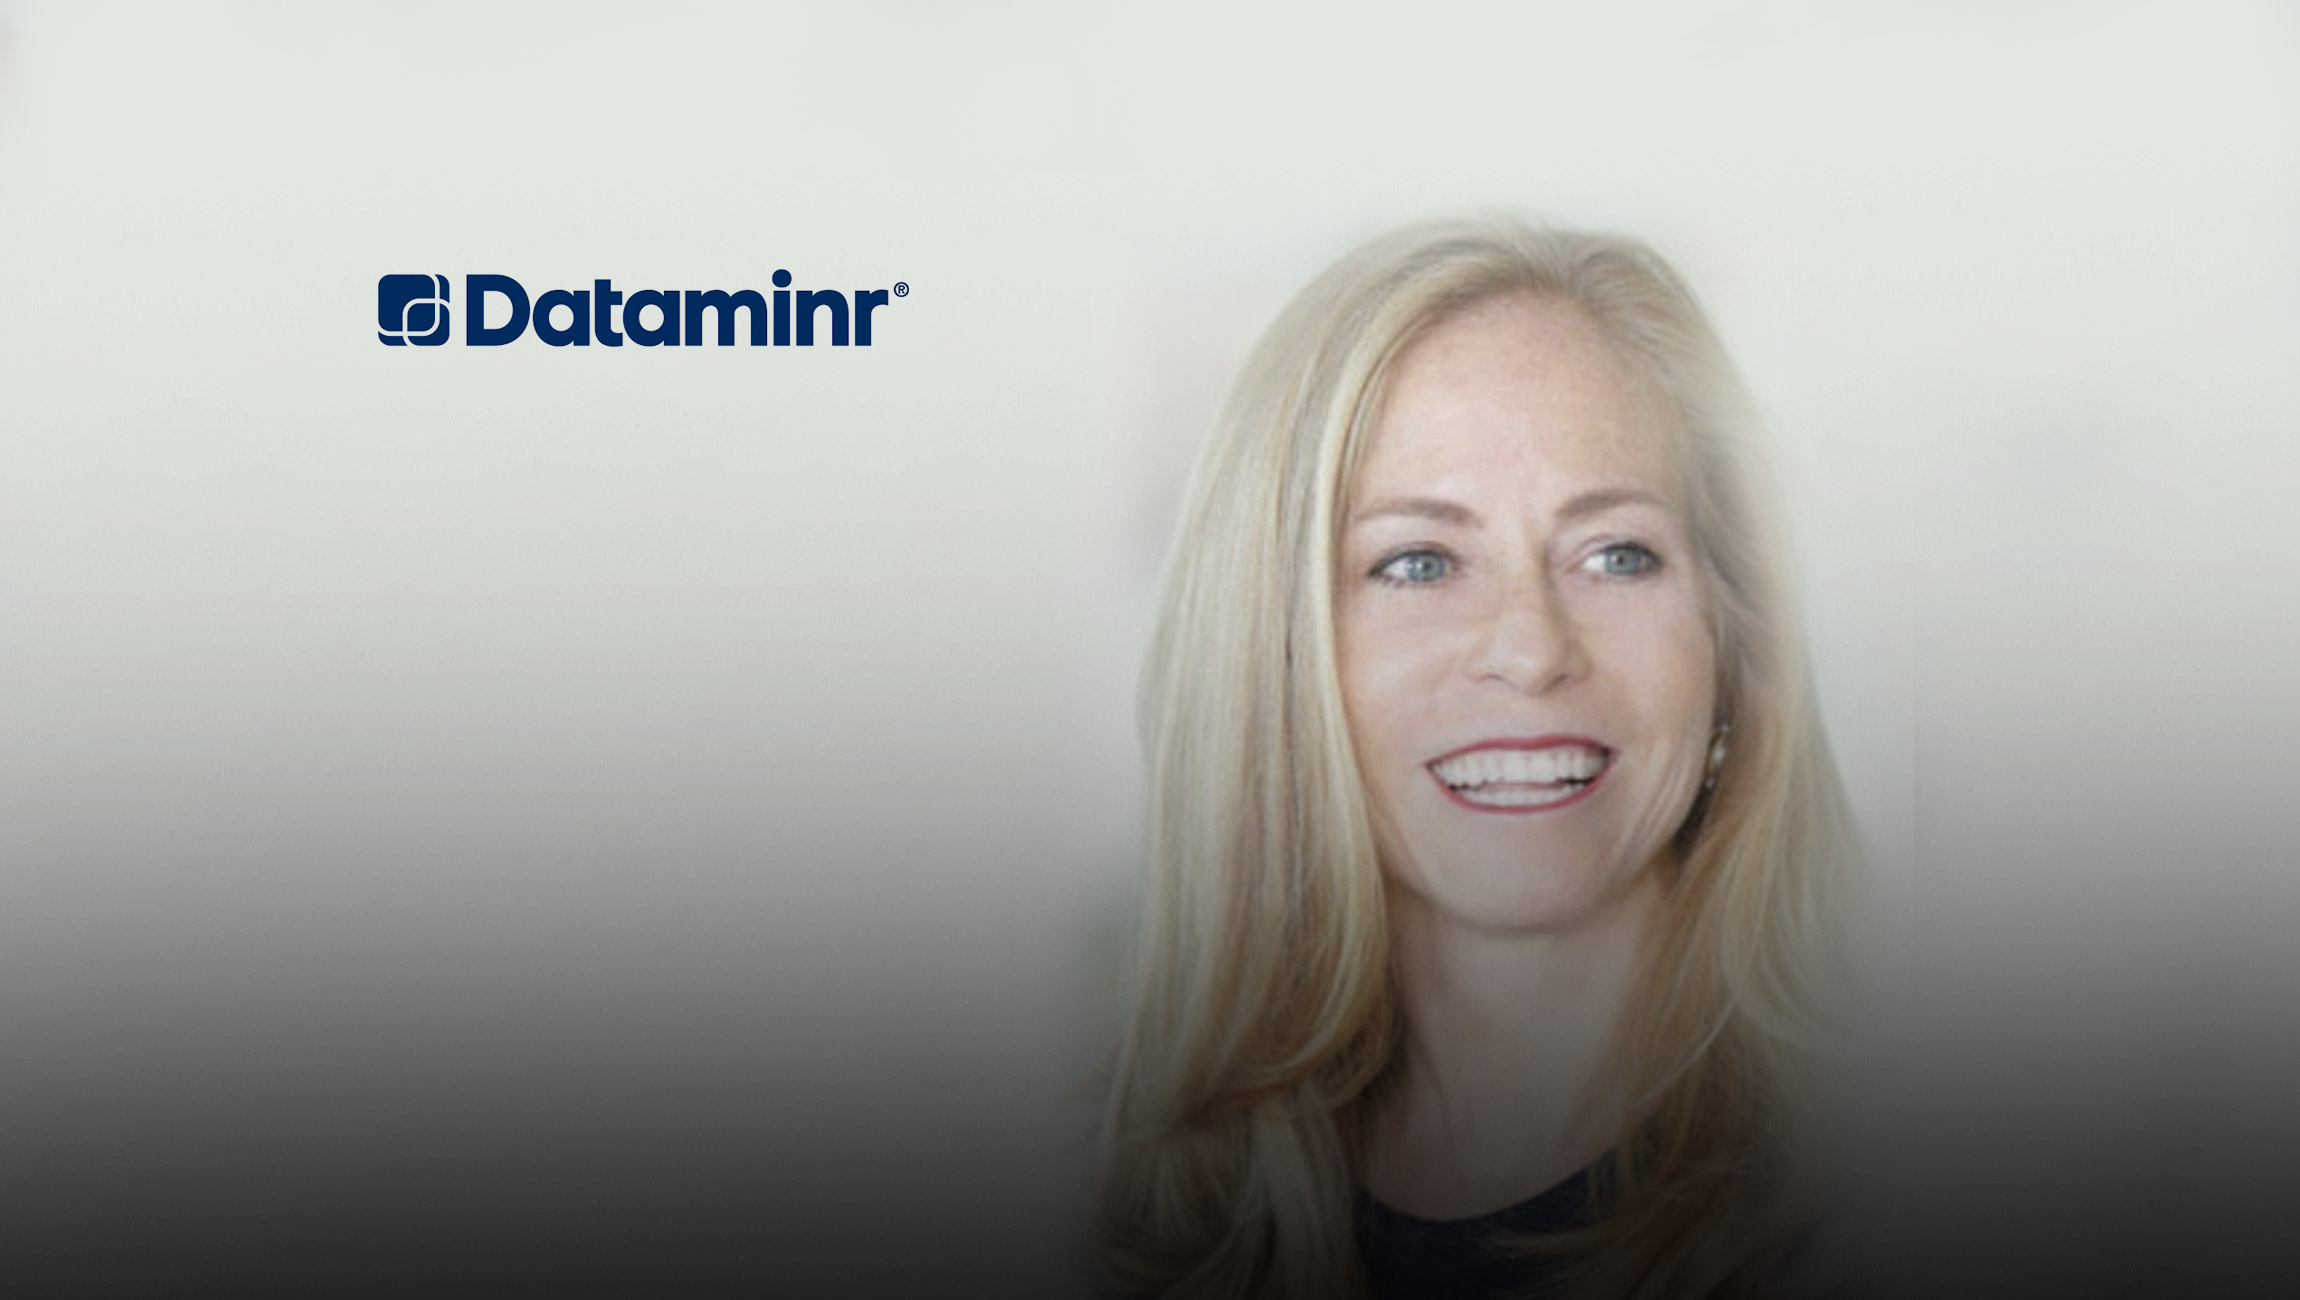 Dataminr Announces Appointment of Nella Domenici as New Chief Financial Officer